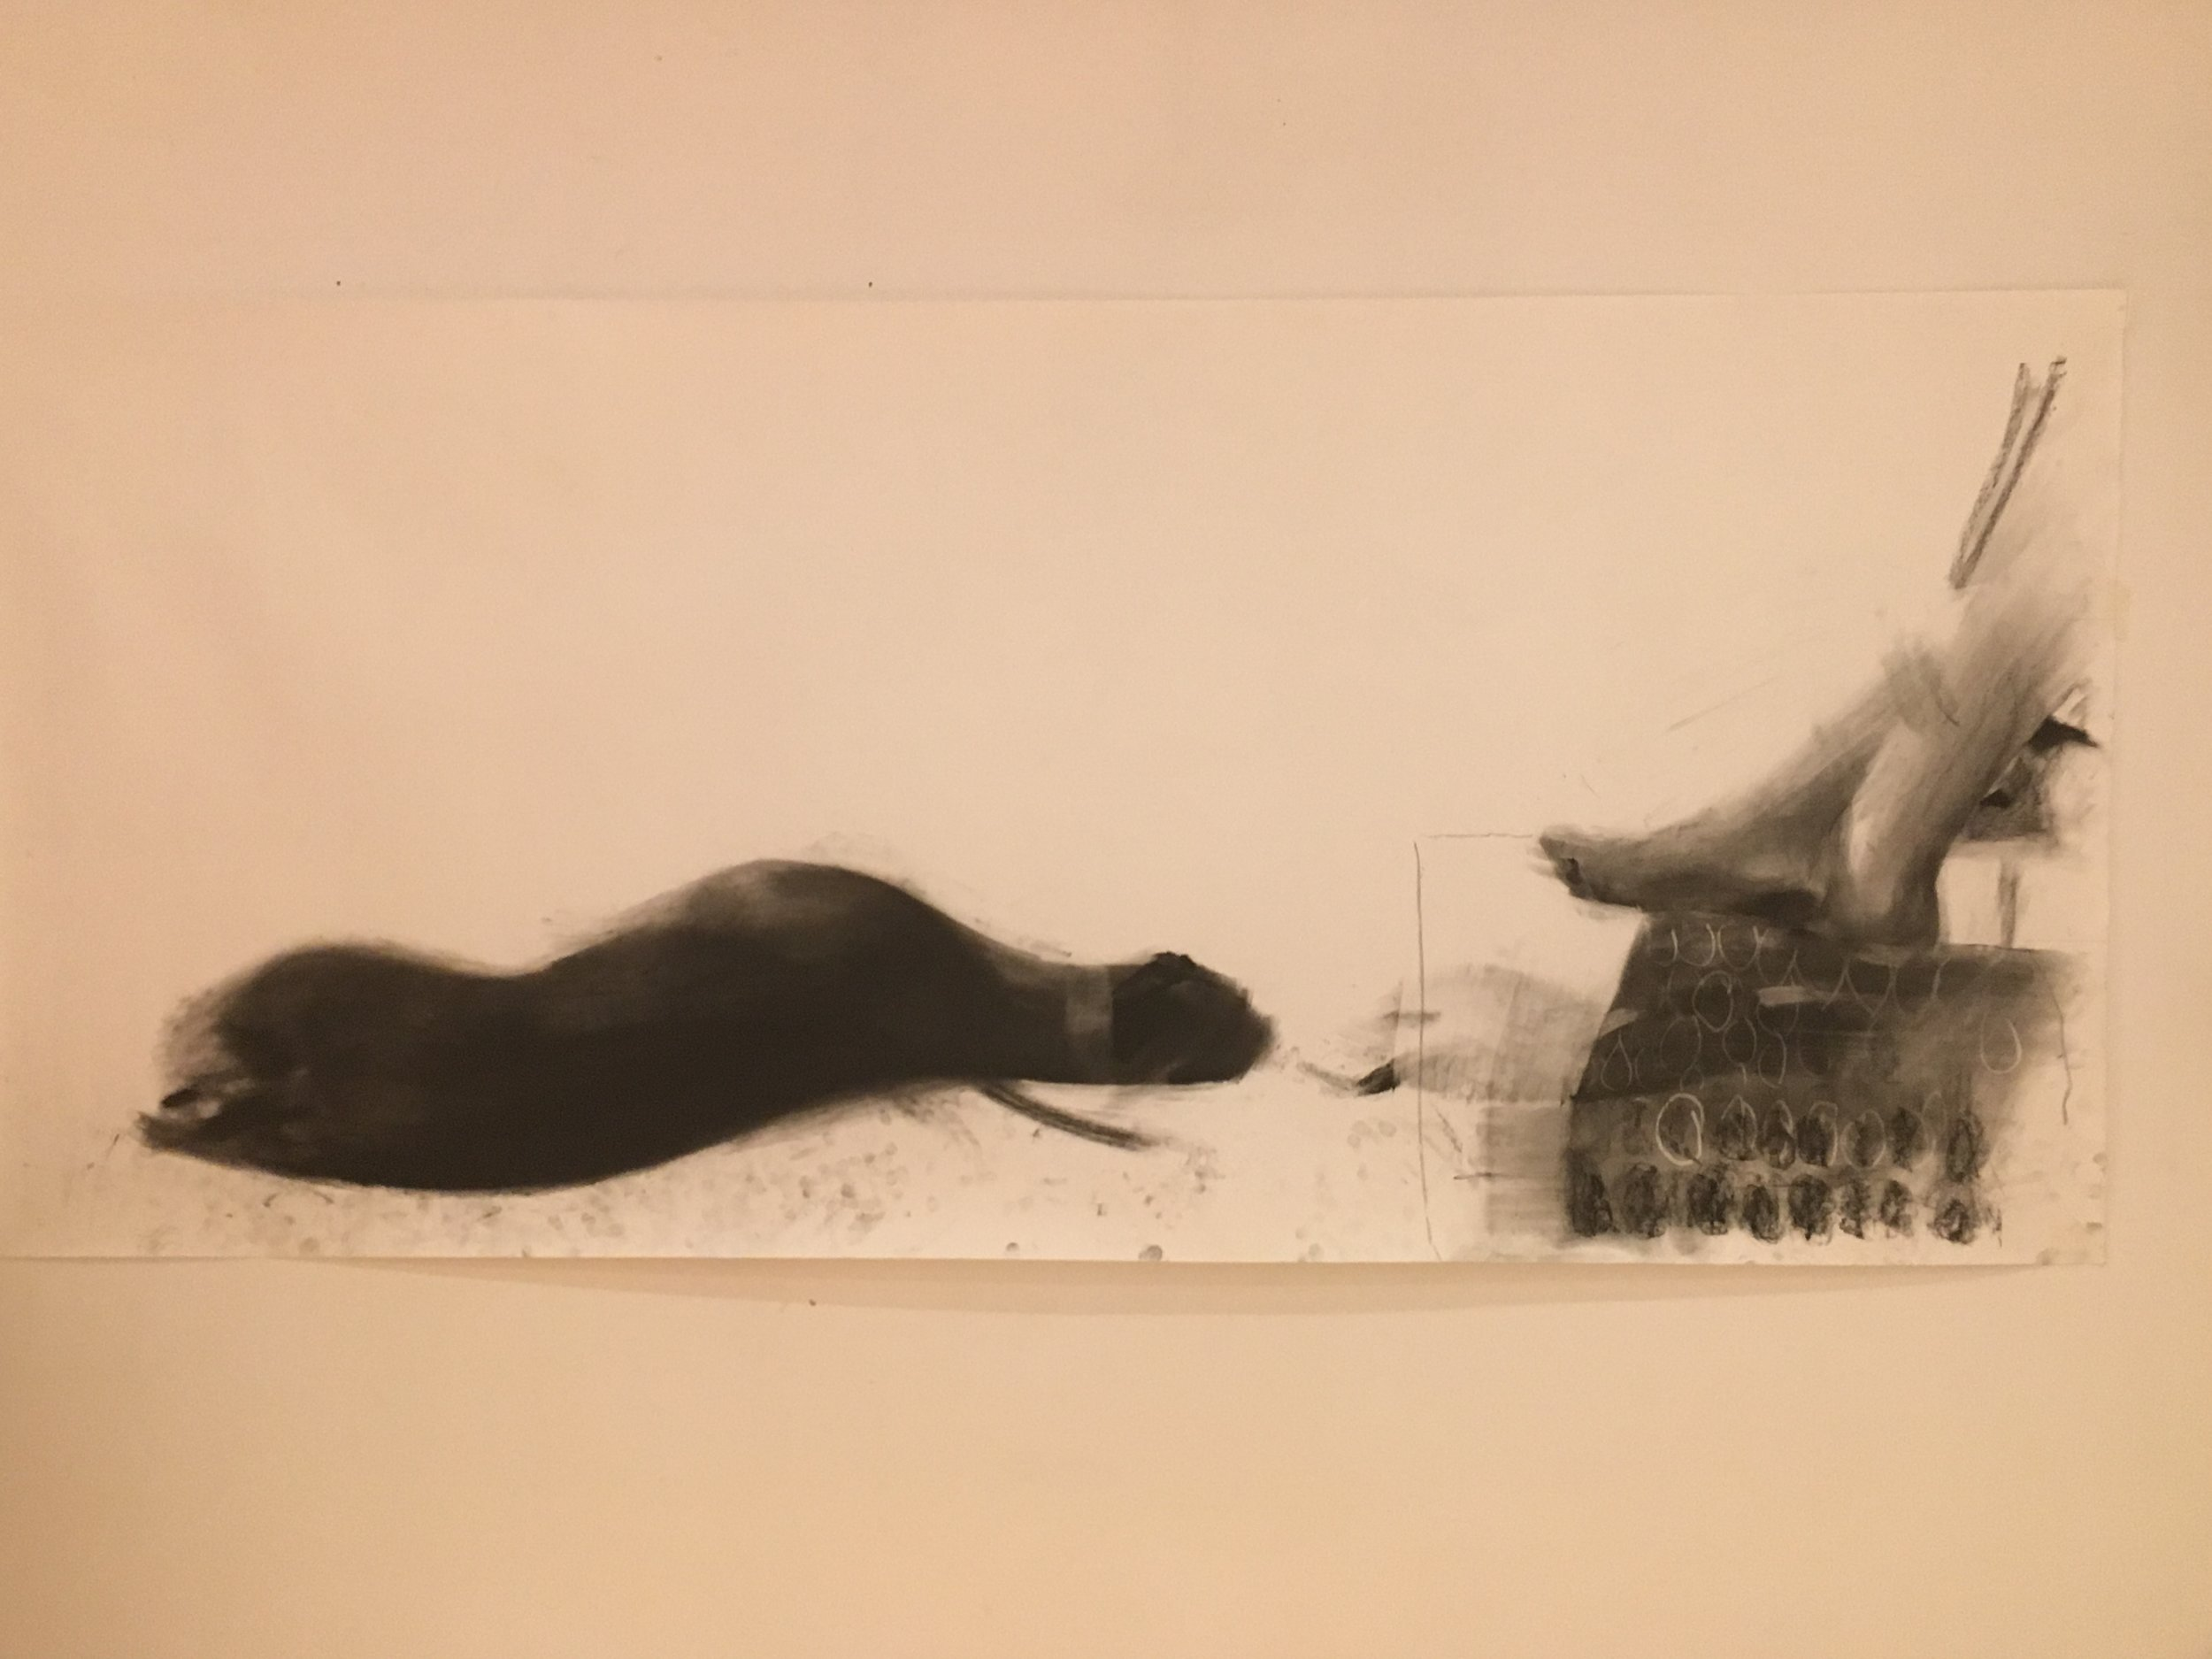 greyhound at a woman's feet, charcoal on paper  200 cms x 80 cms 2019